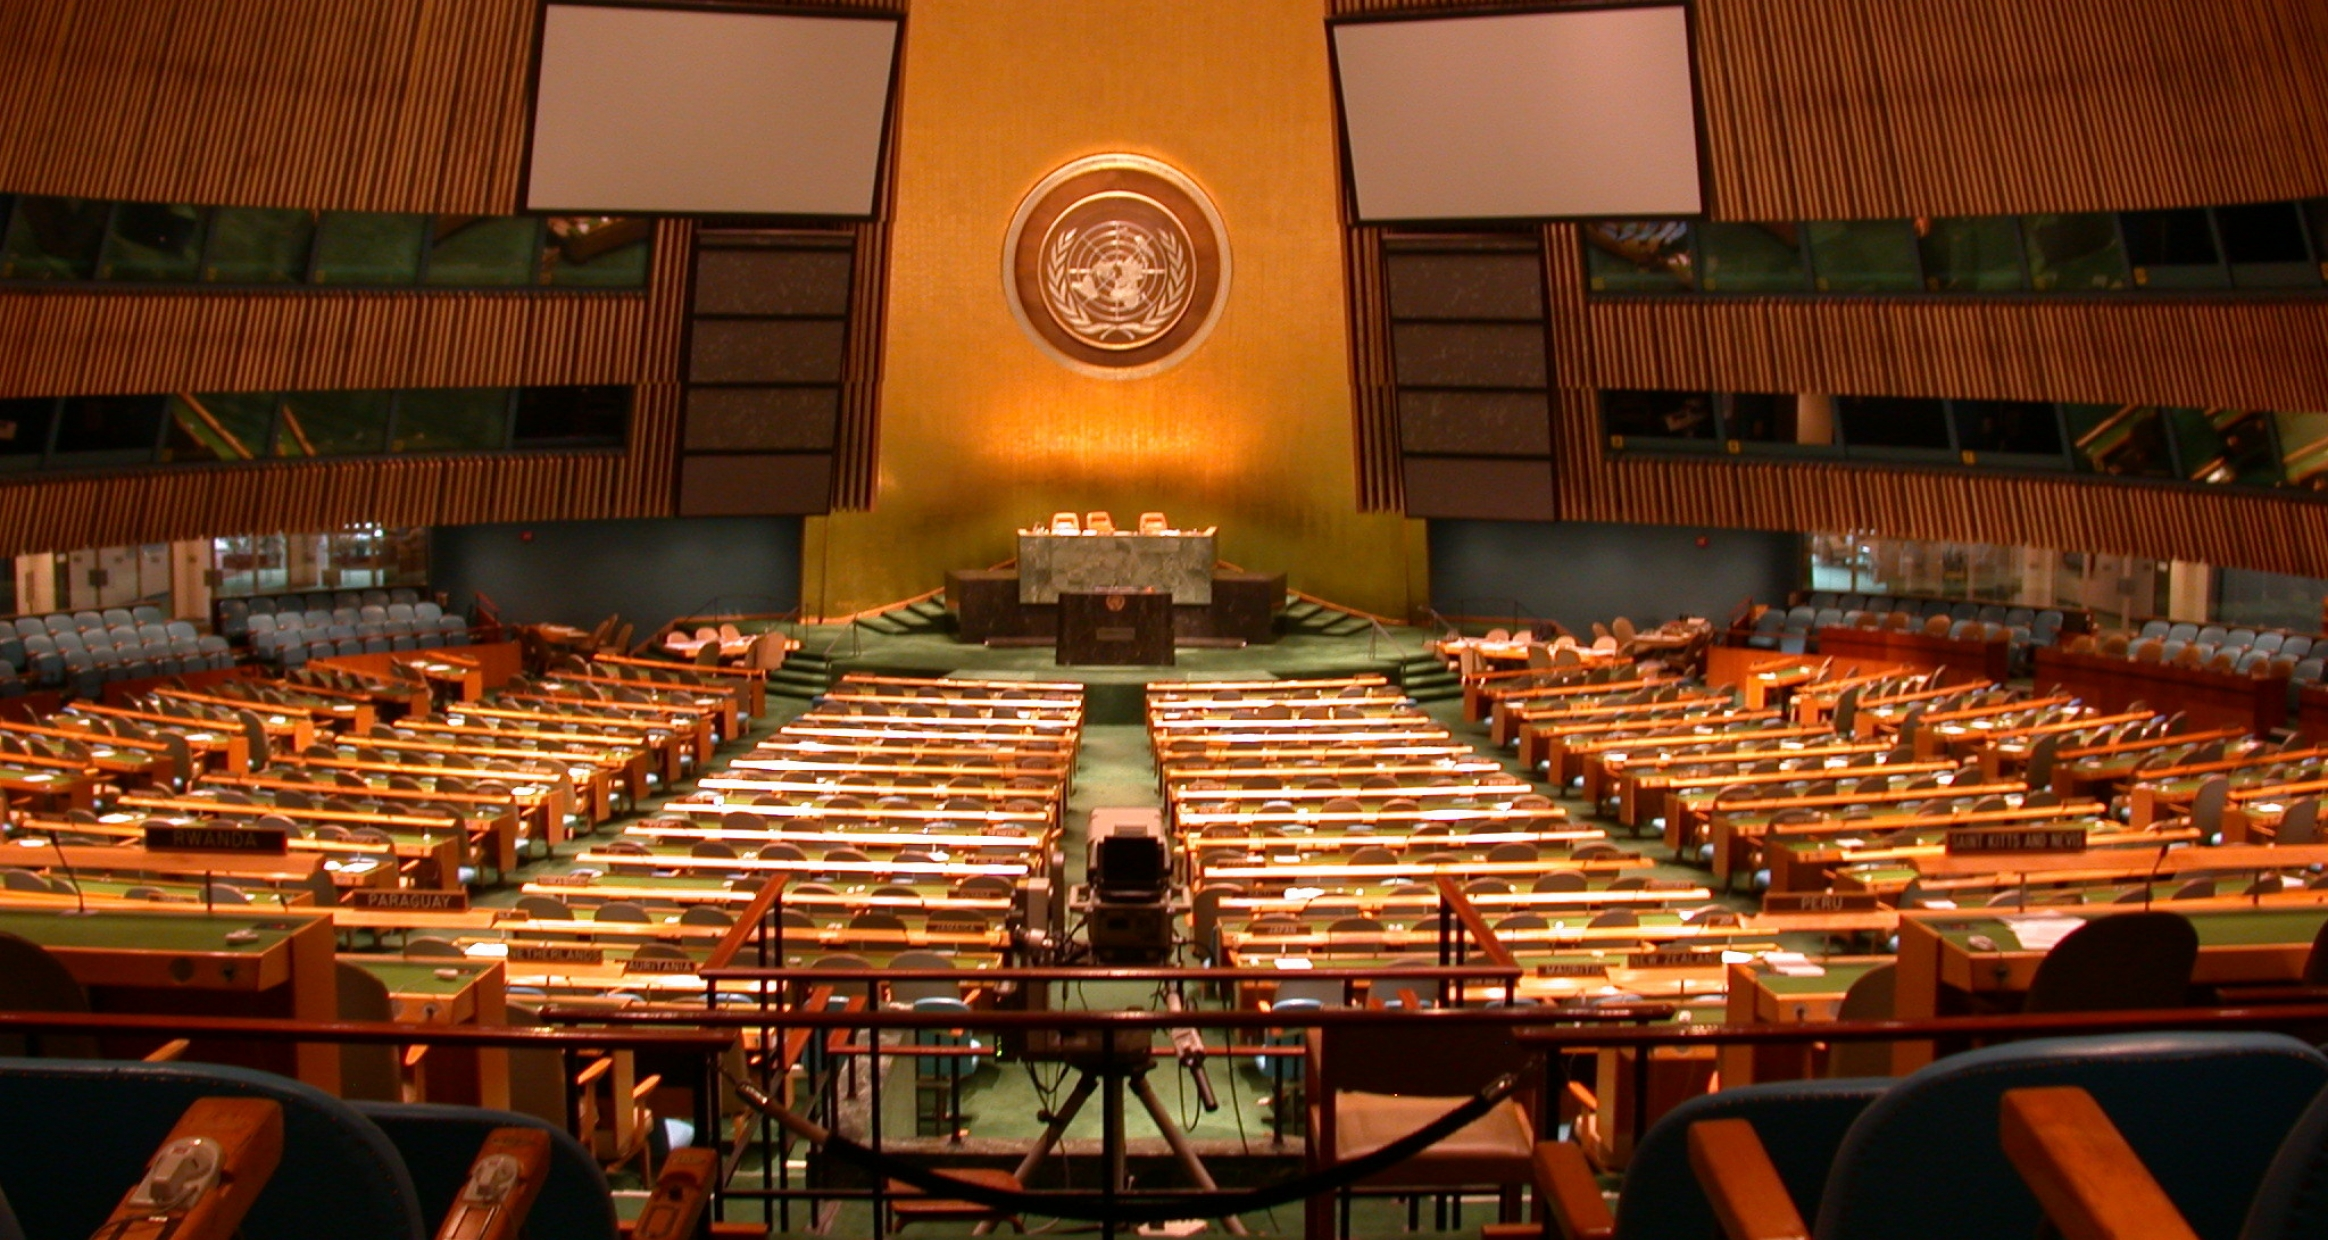 Interior view of the General Assembly Chamber at the UN Headquarters